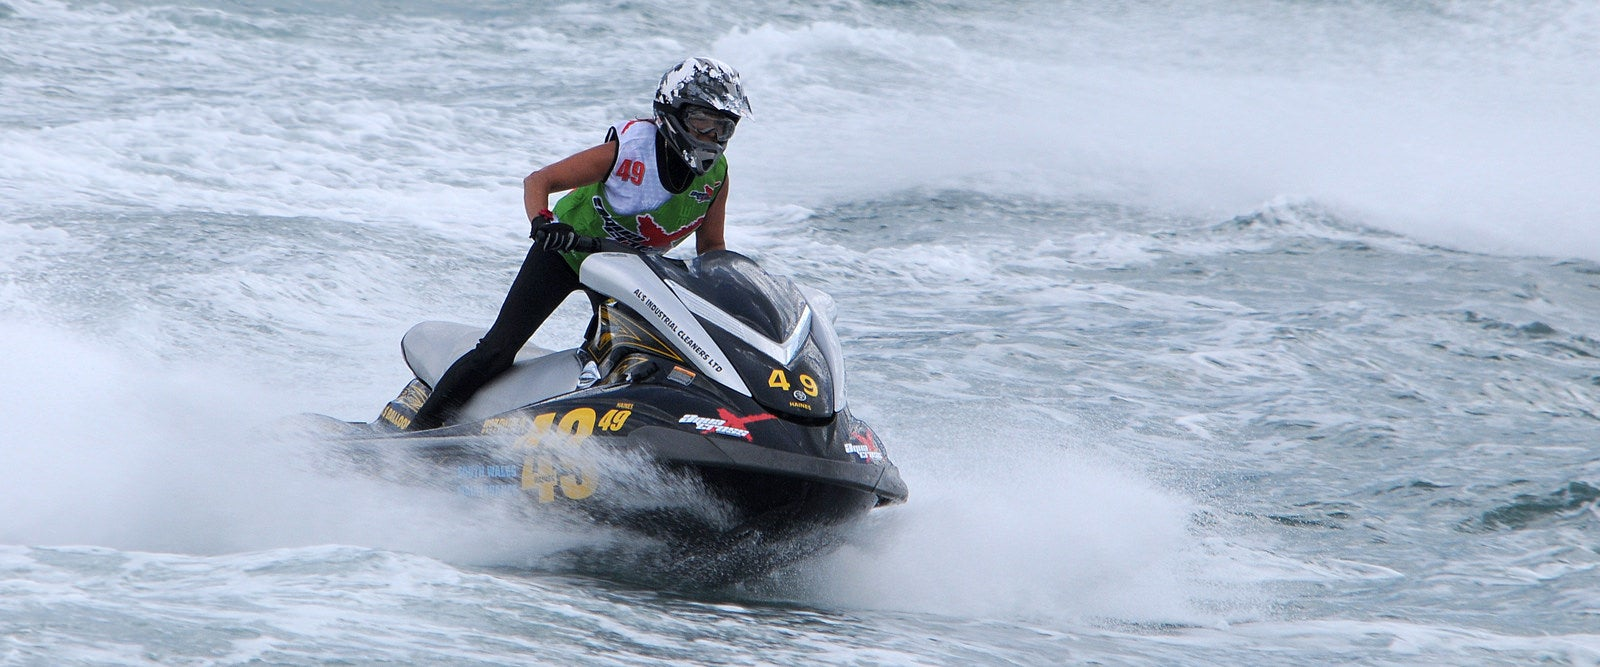 5 Best Places For a Fort Myers Jet Ski Rental